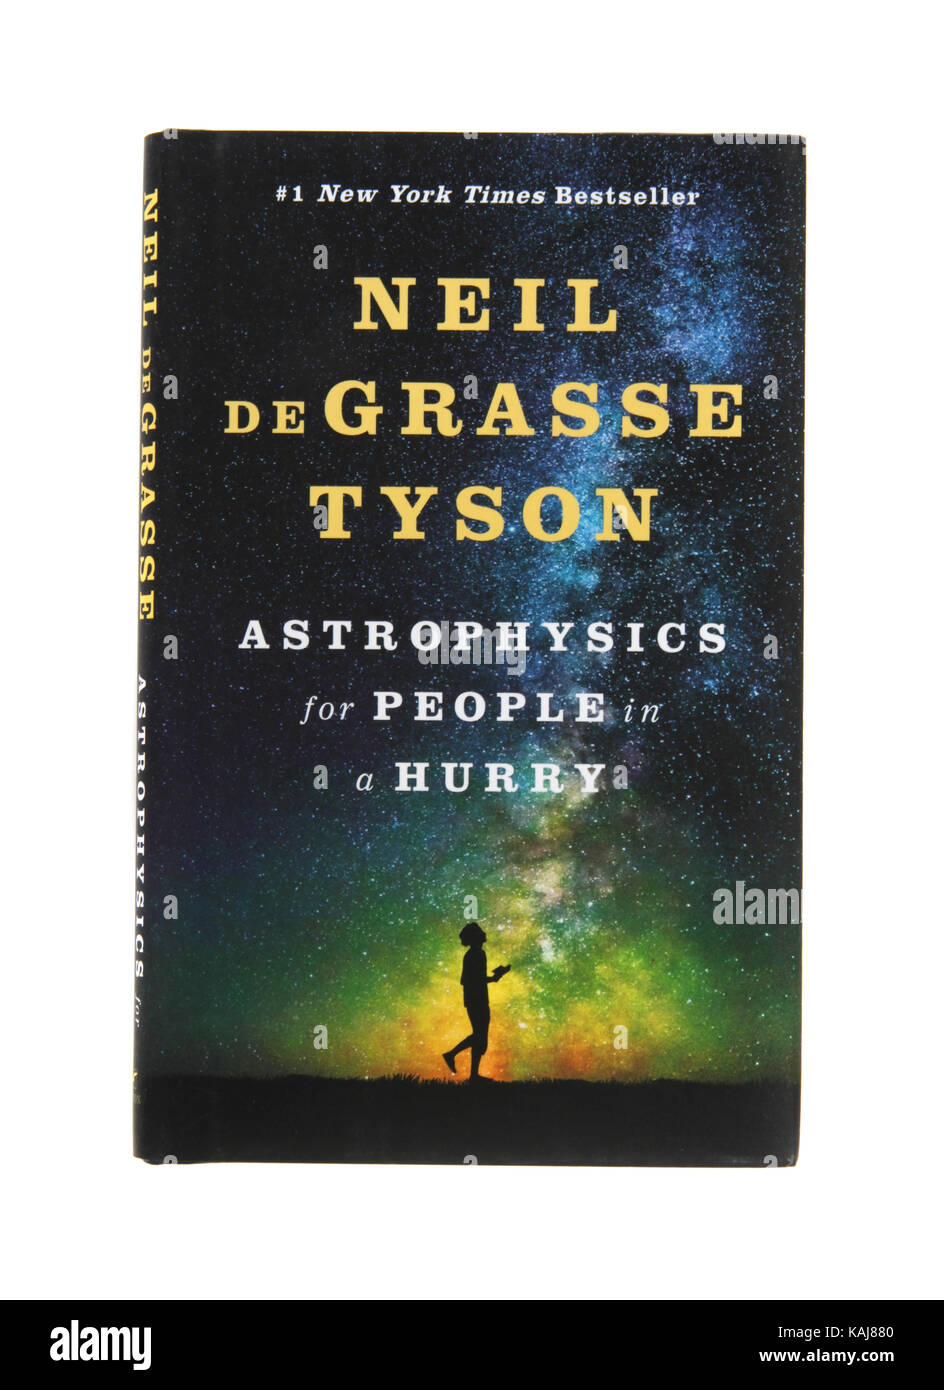 The book Astrophysics for People in a Hurry by Neil DeGrasse Tyson - Stock Image